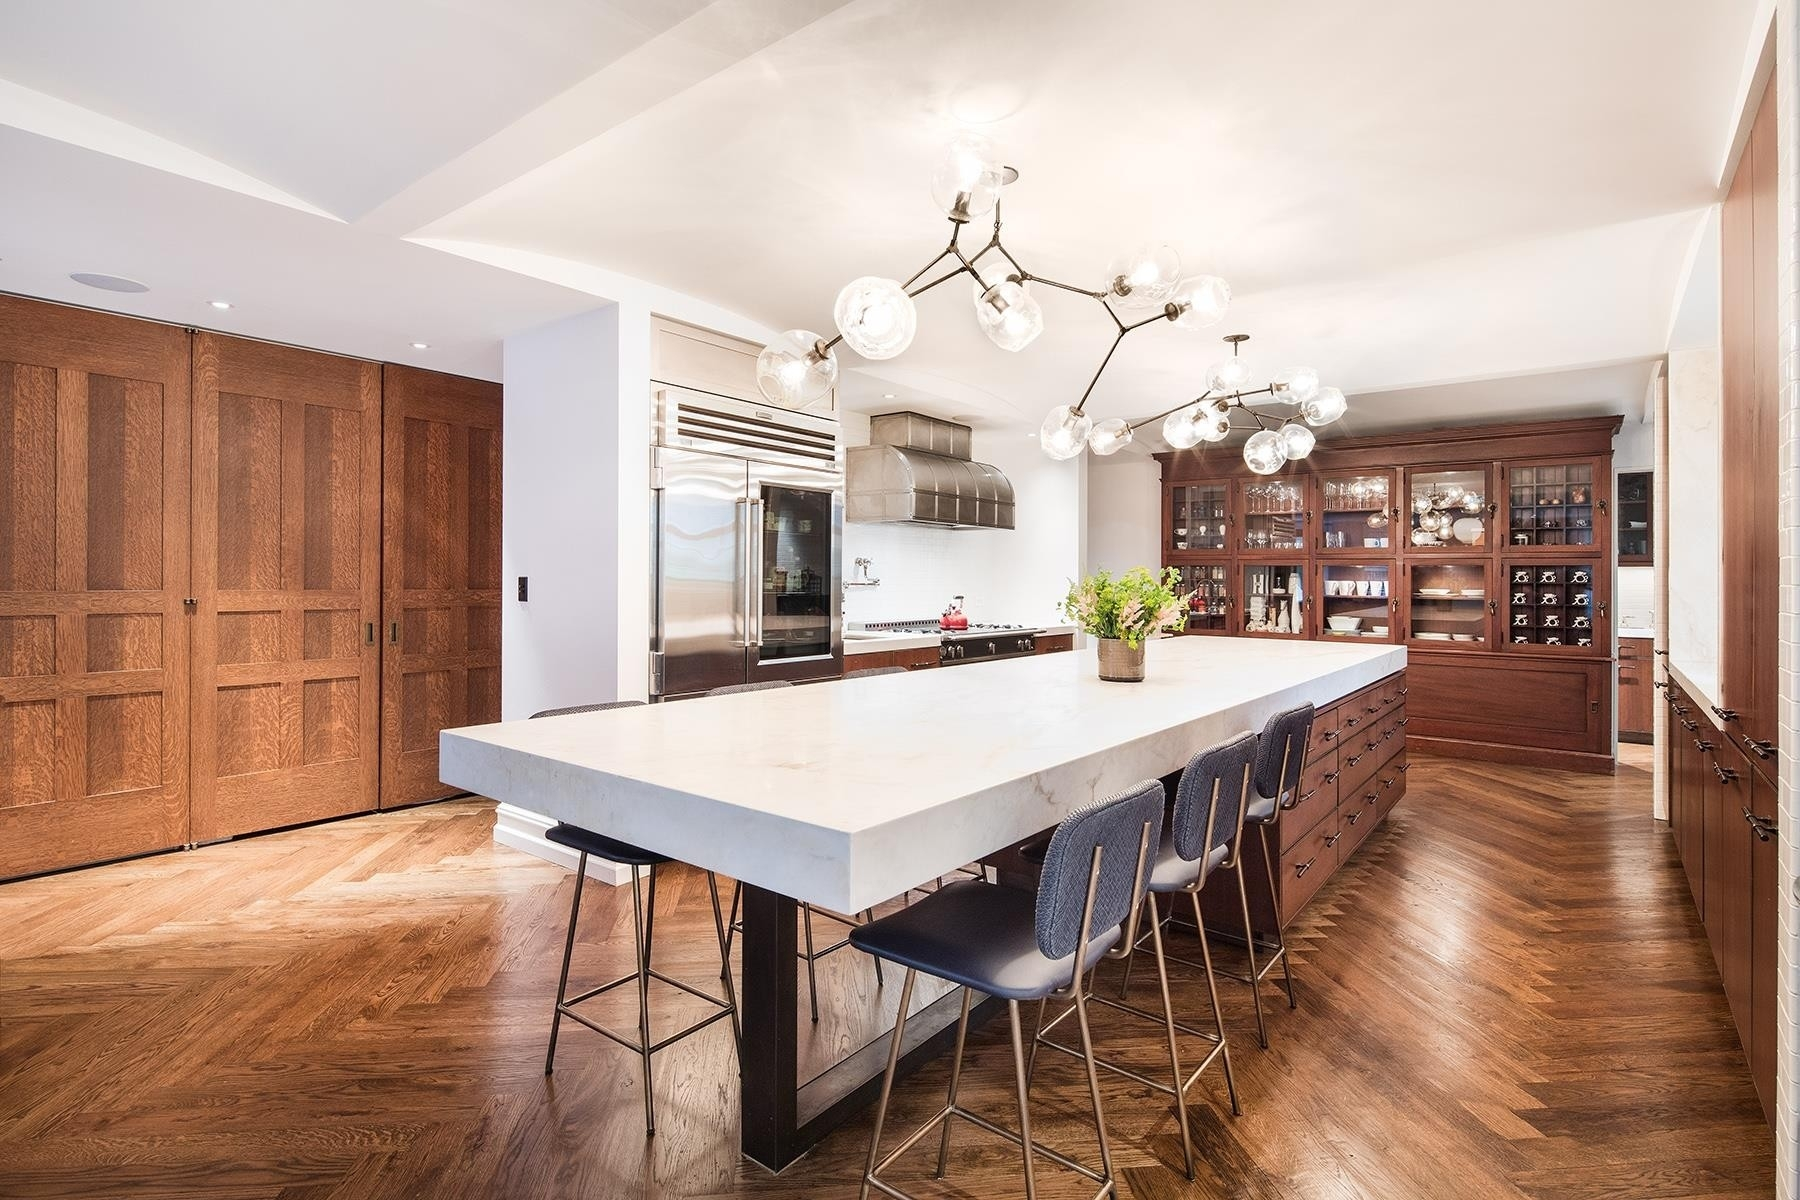 4. Single Family Townhouse for Sale at 17 PROSPECT PARK W, TOWNHOUSE Park Slope, Brooklyn, NY 11215